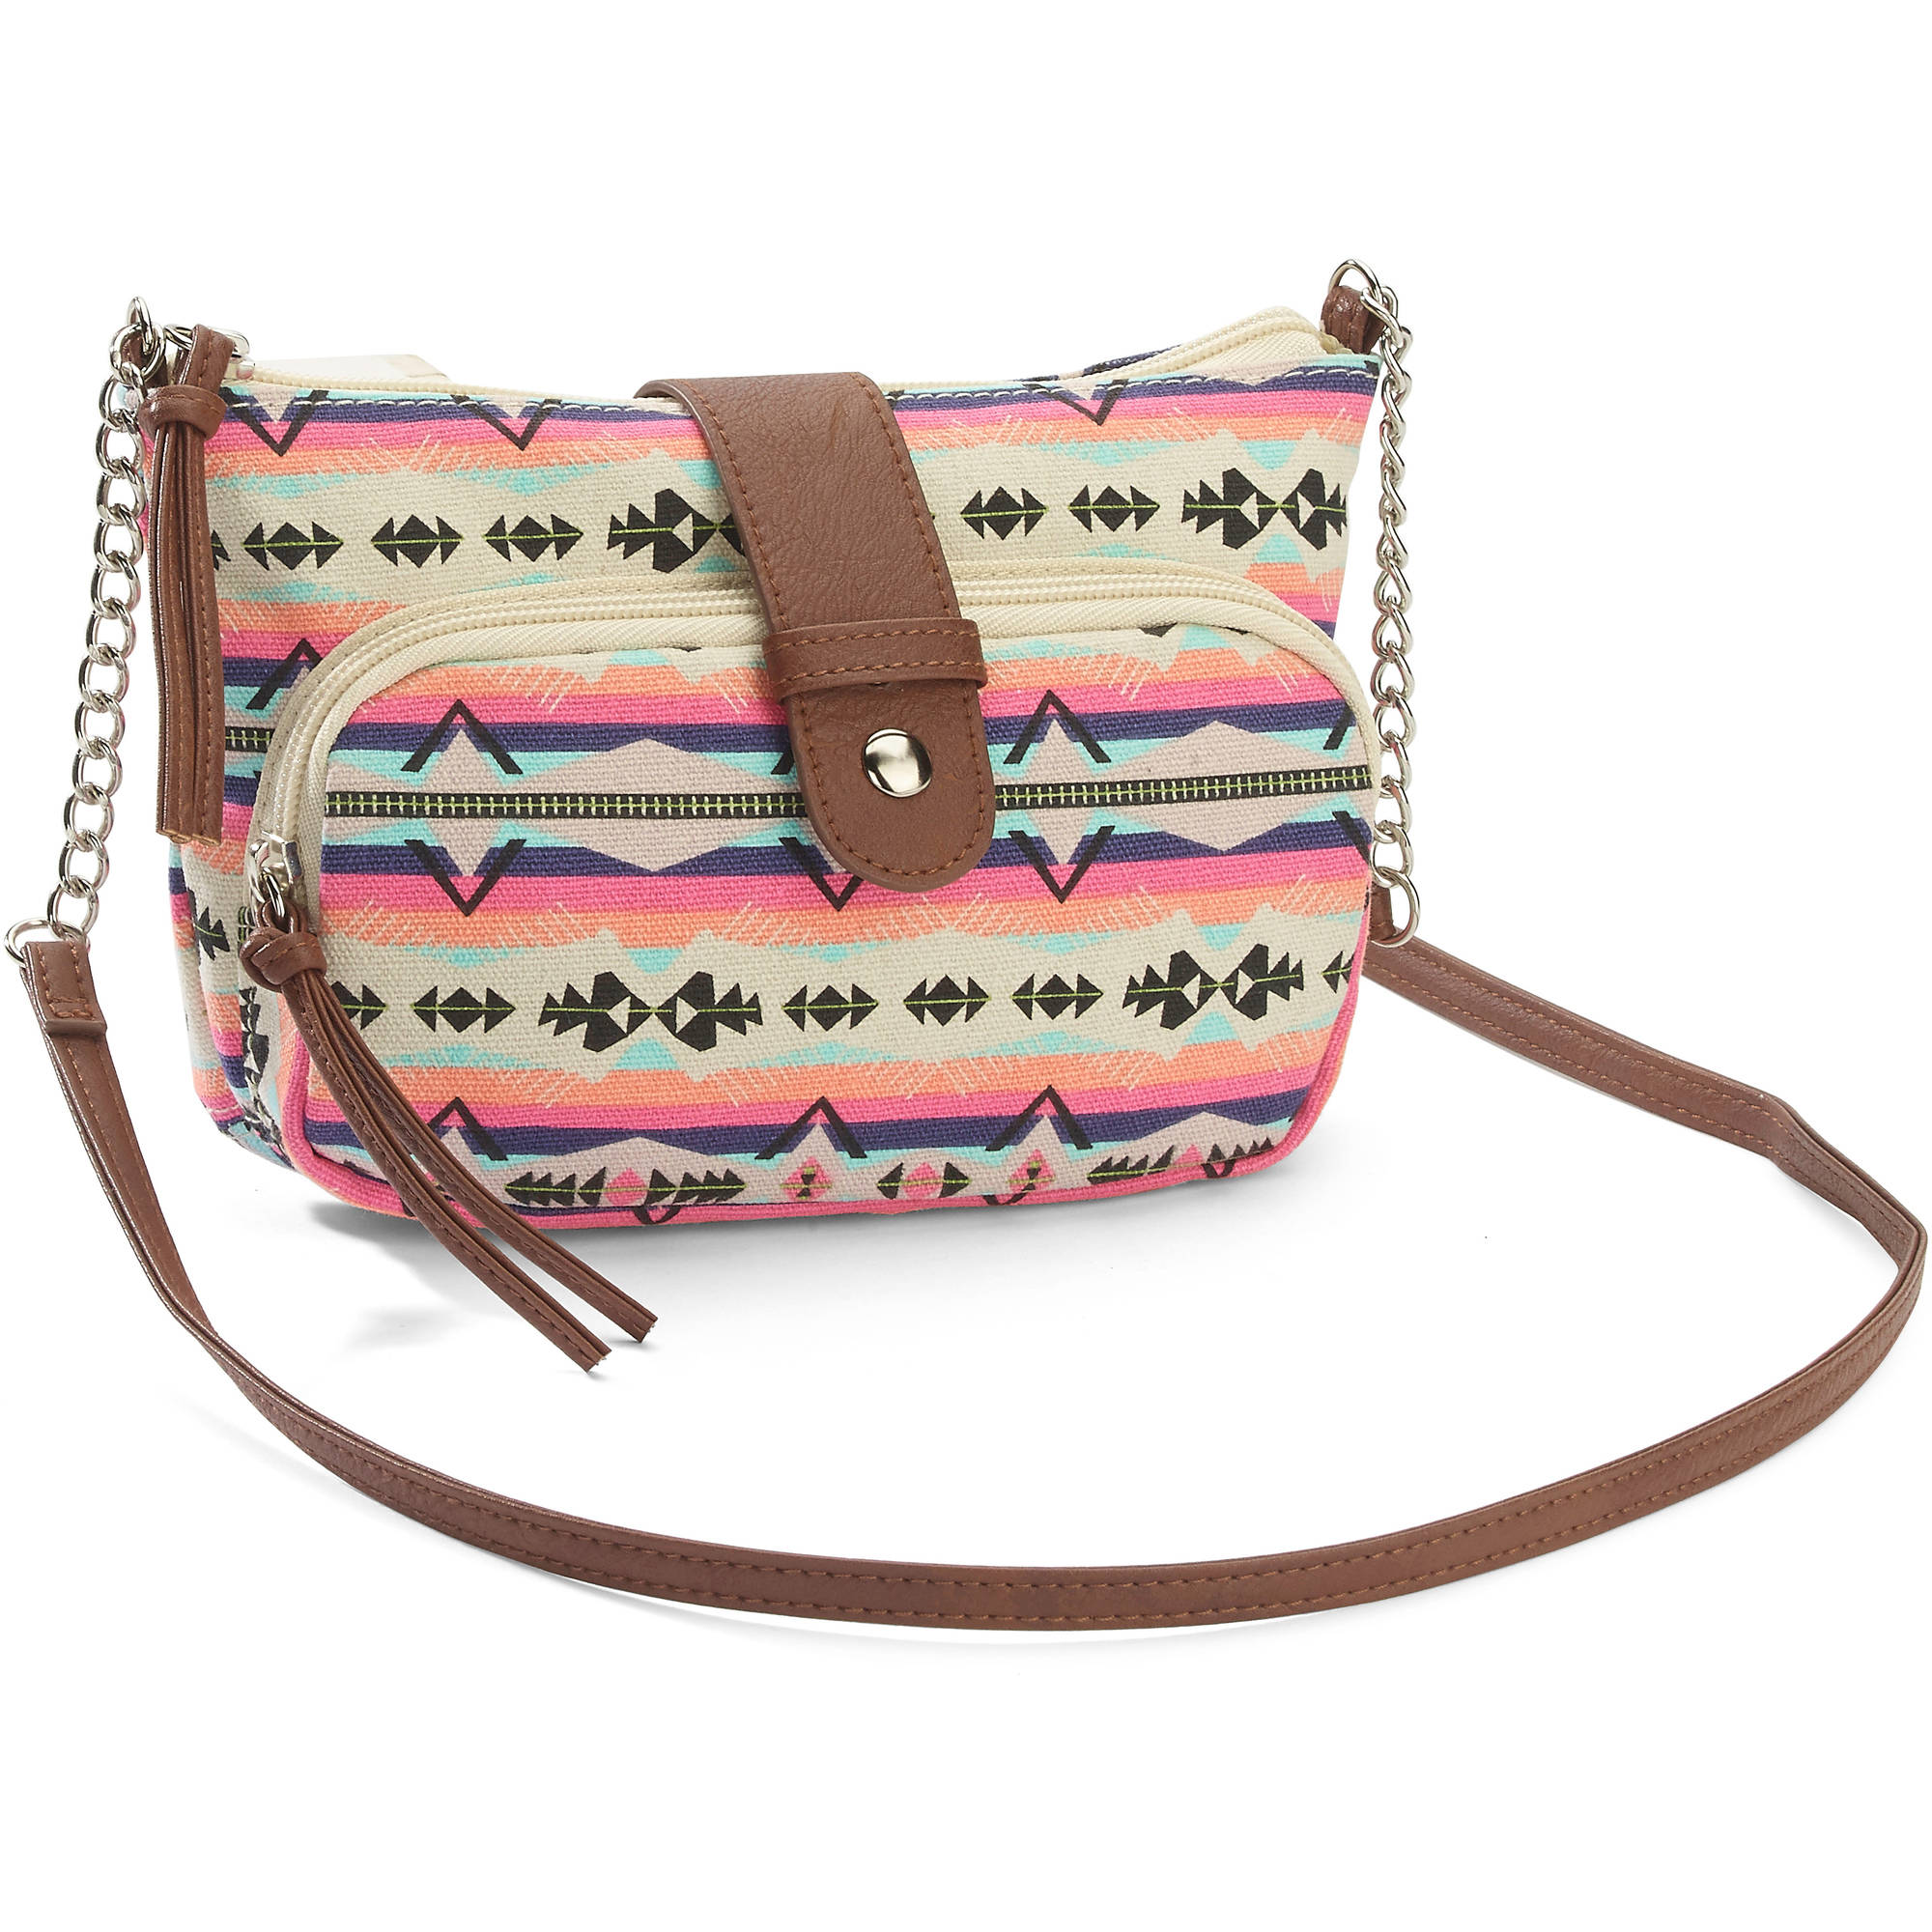 No Boundaries Women's Printed Small Cross body